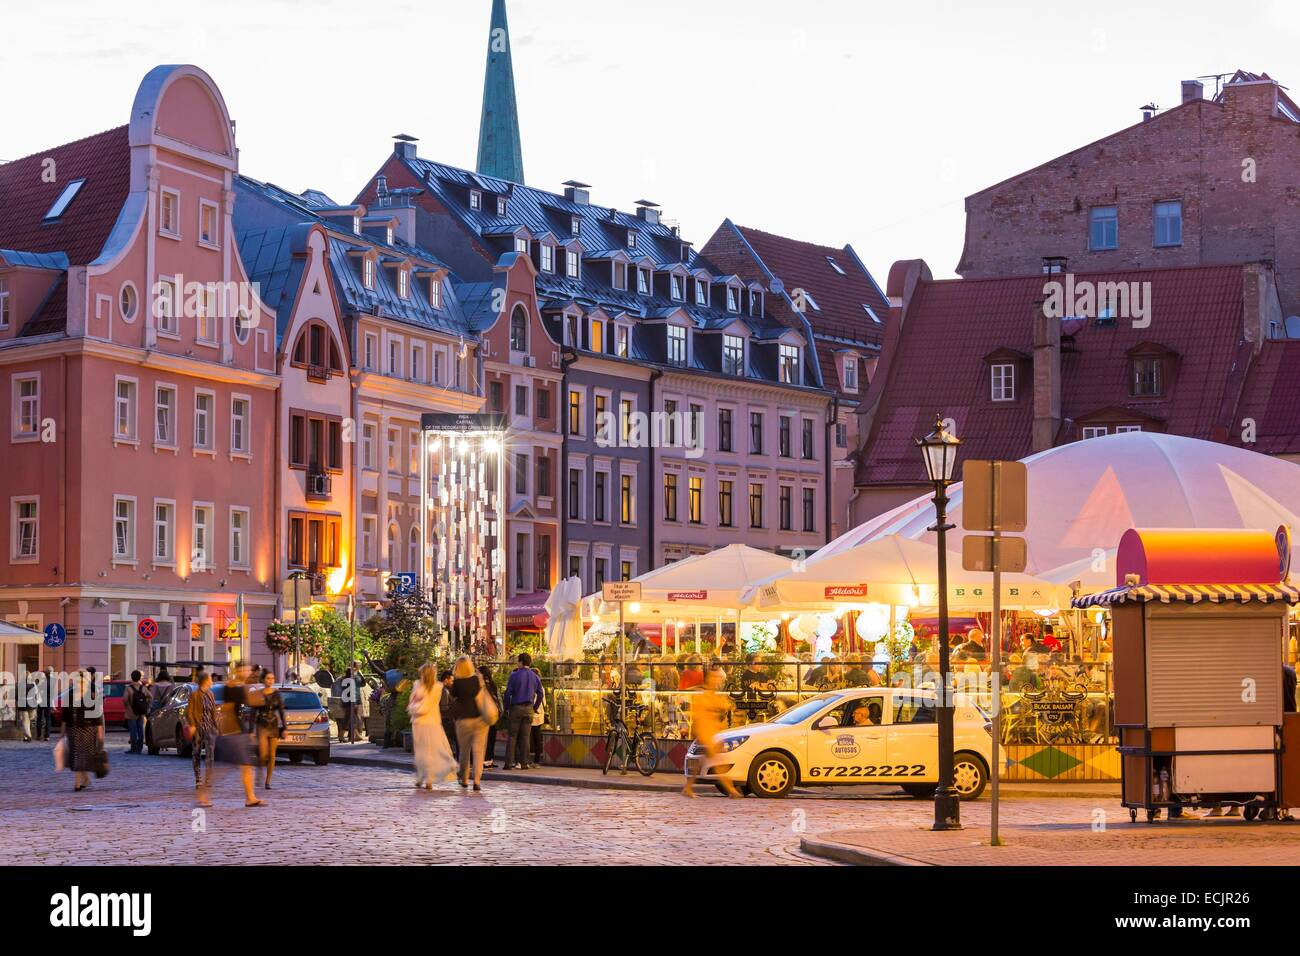 Latvia (Baltic States), Riga, European capital of culture 2014, historical centre listed as World Heritage by UNESCO, - Stock Image